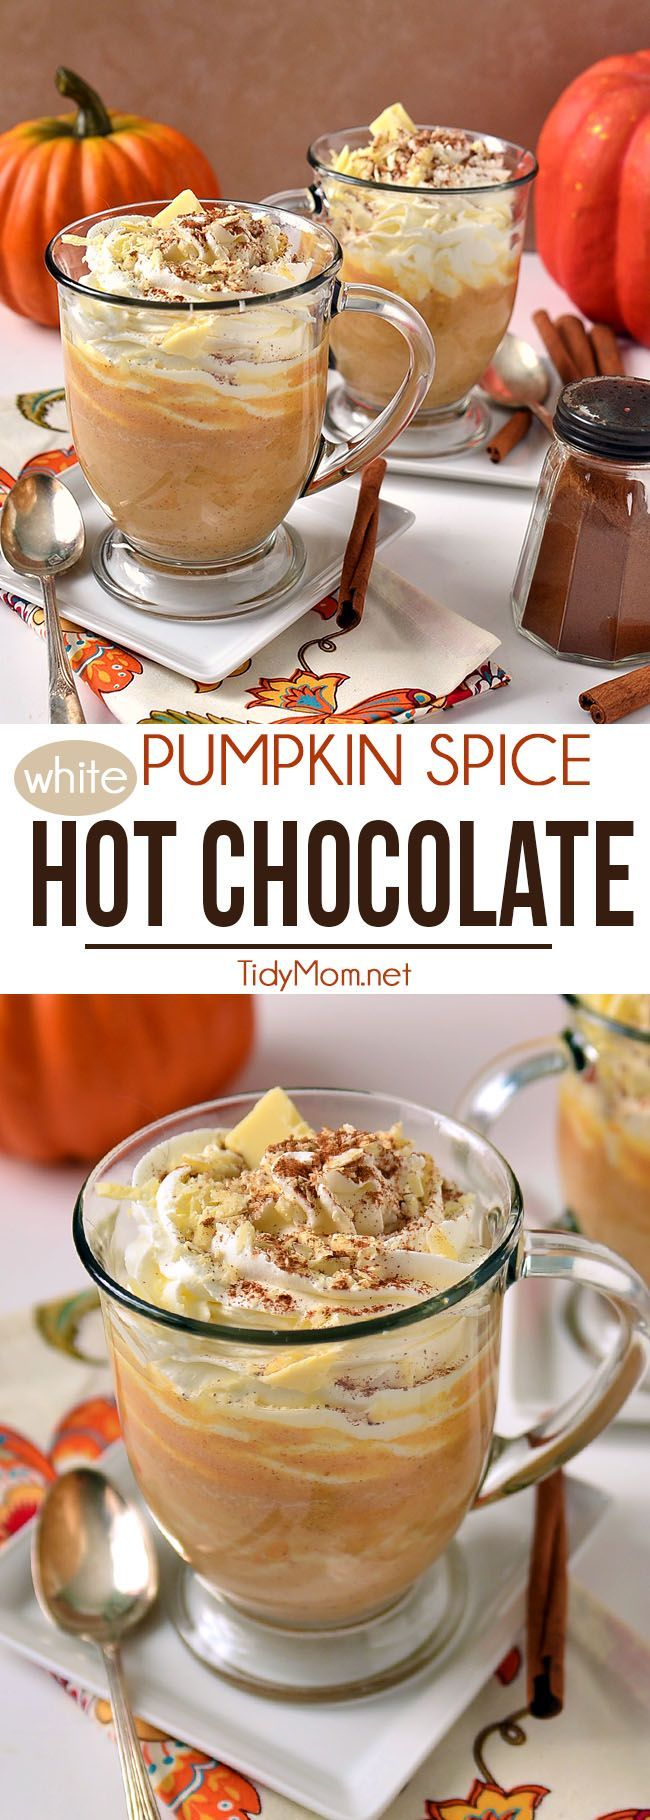 Pumpkin Spice White Hot Chocolate - a deliciously thick and decadent ...